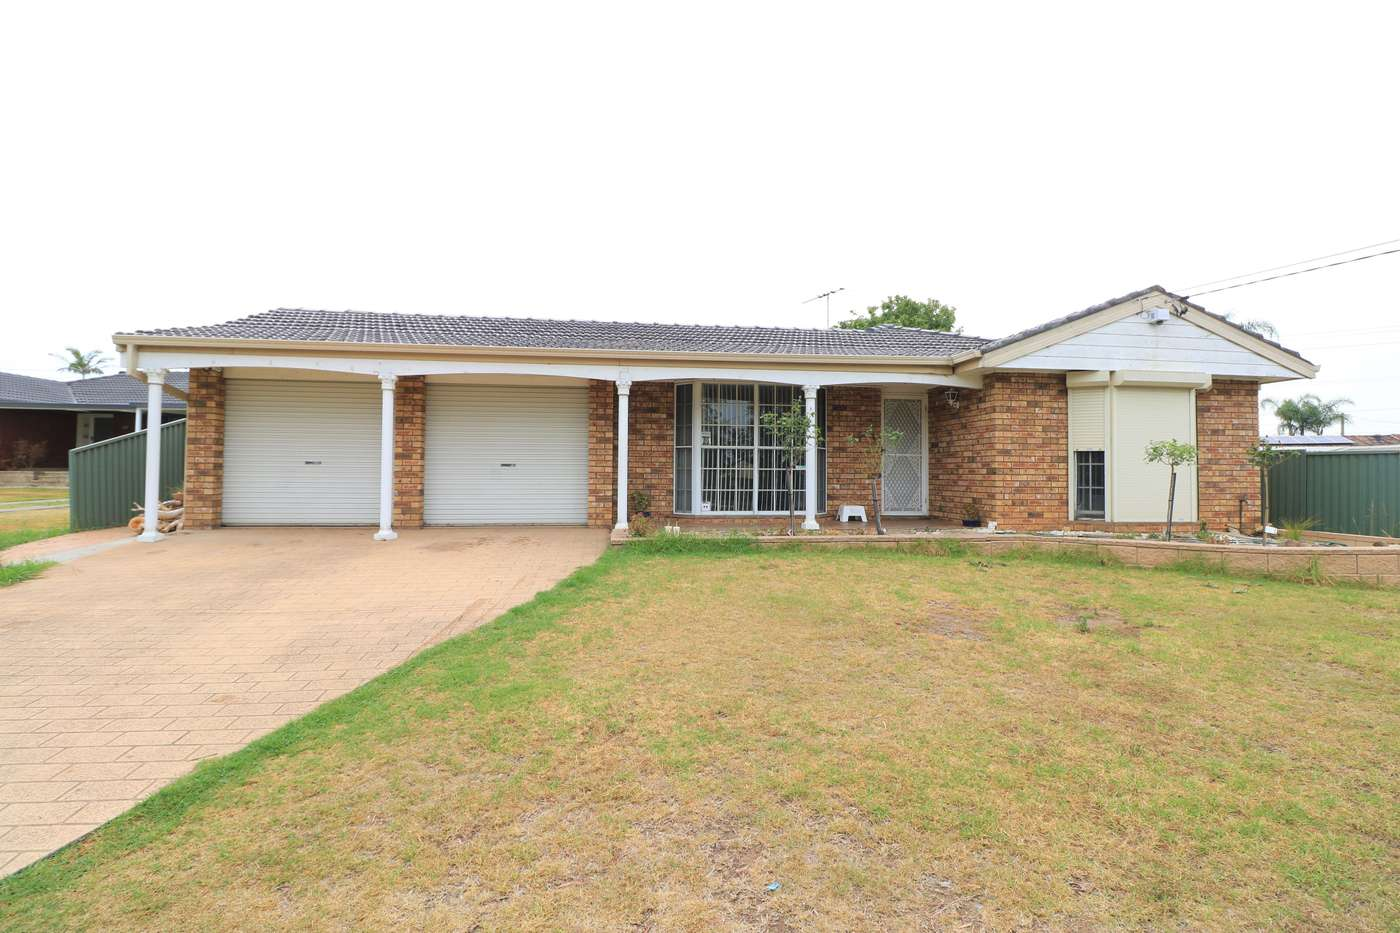 Main view of Homely house listing, 26 Renton Avenue, Moorebank, NSW 2170